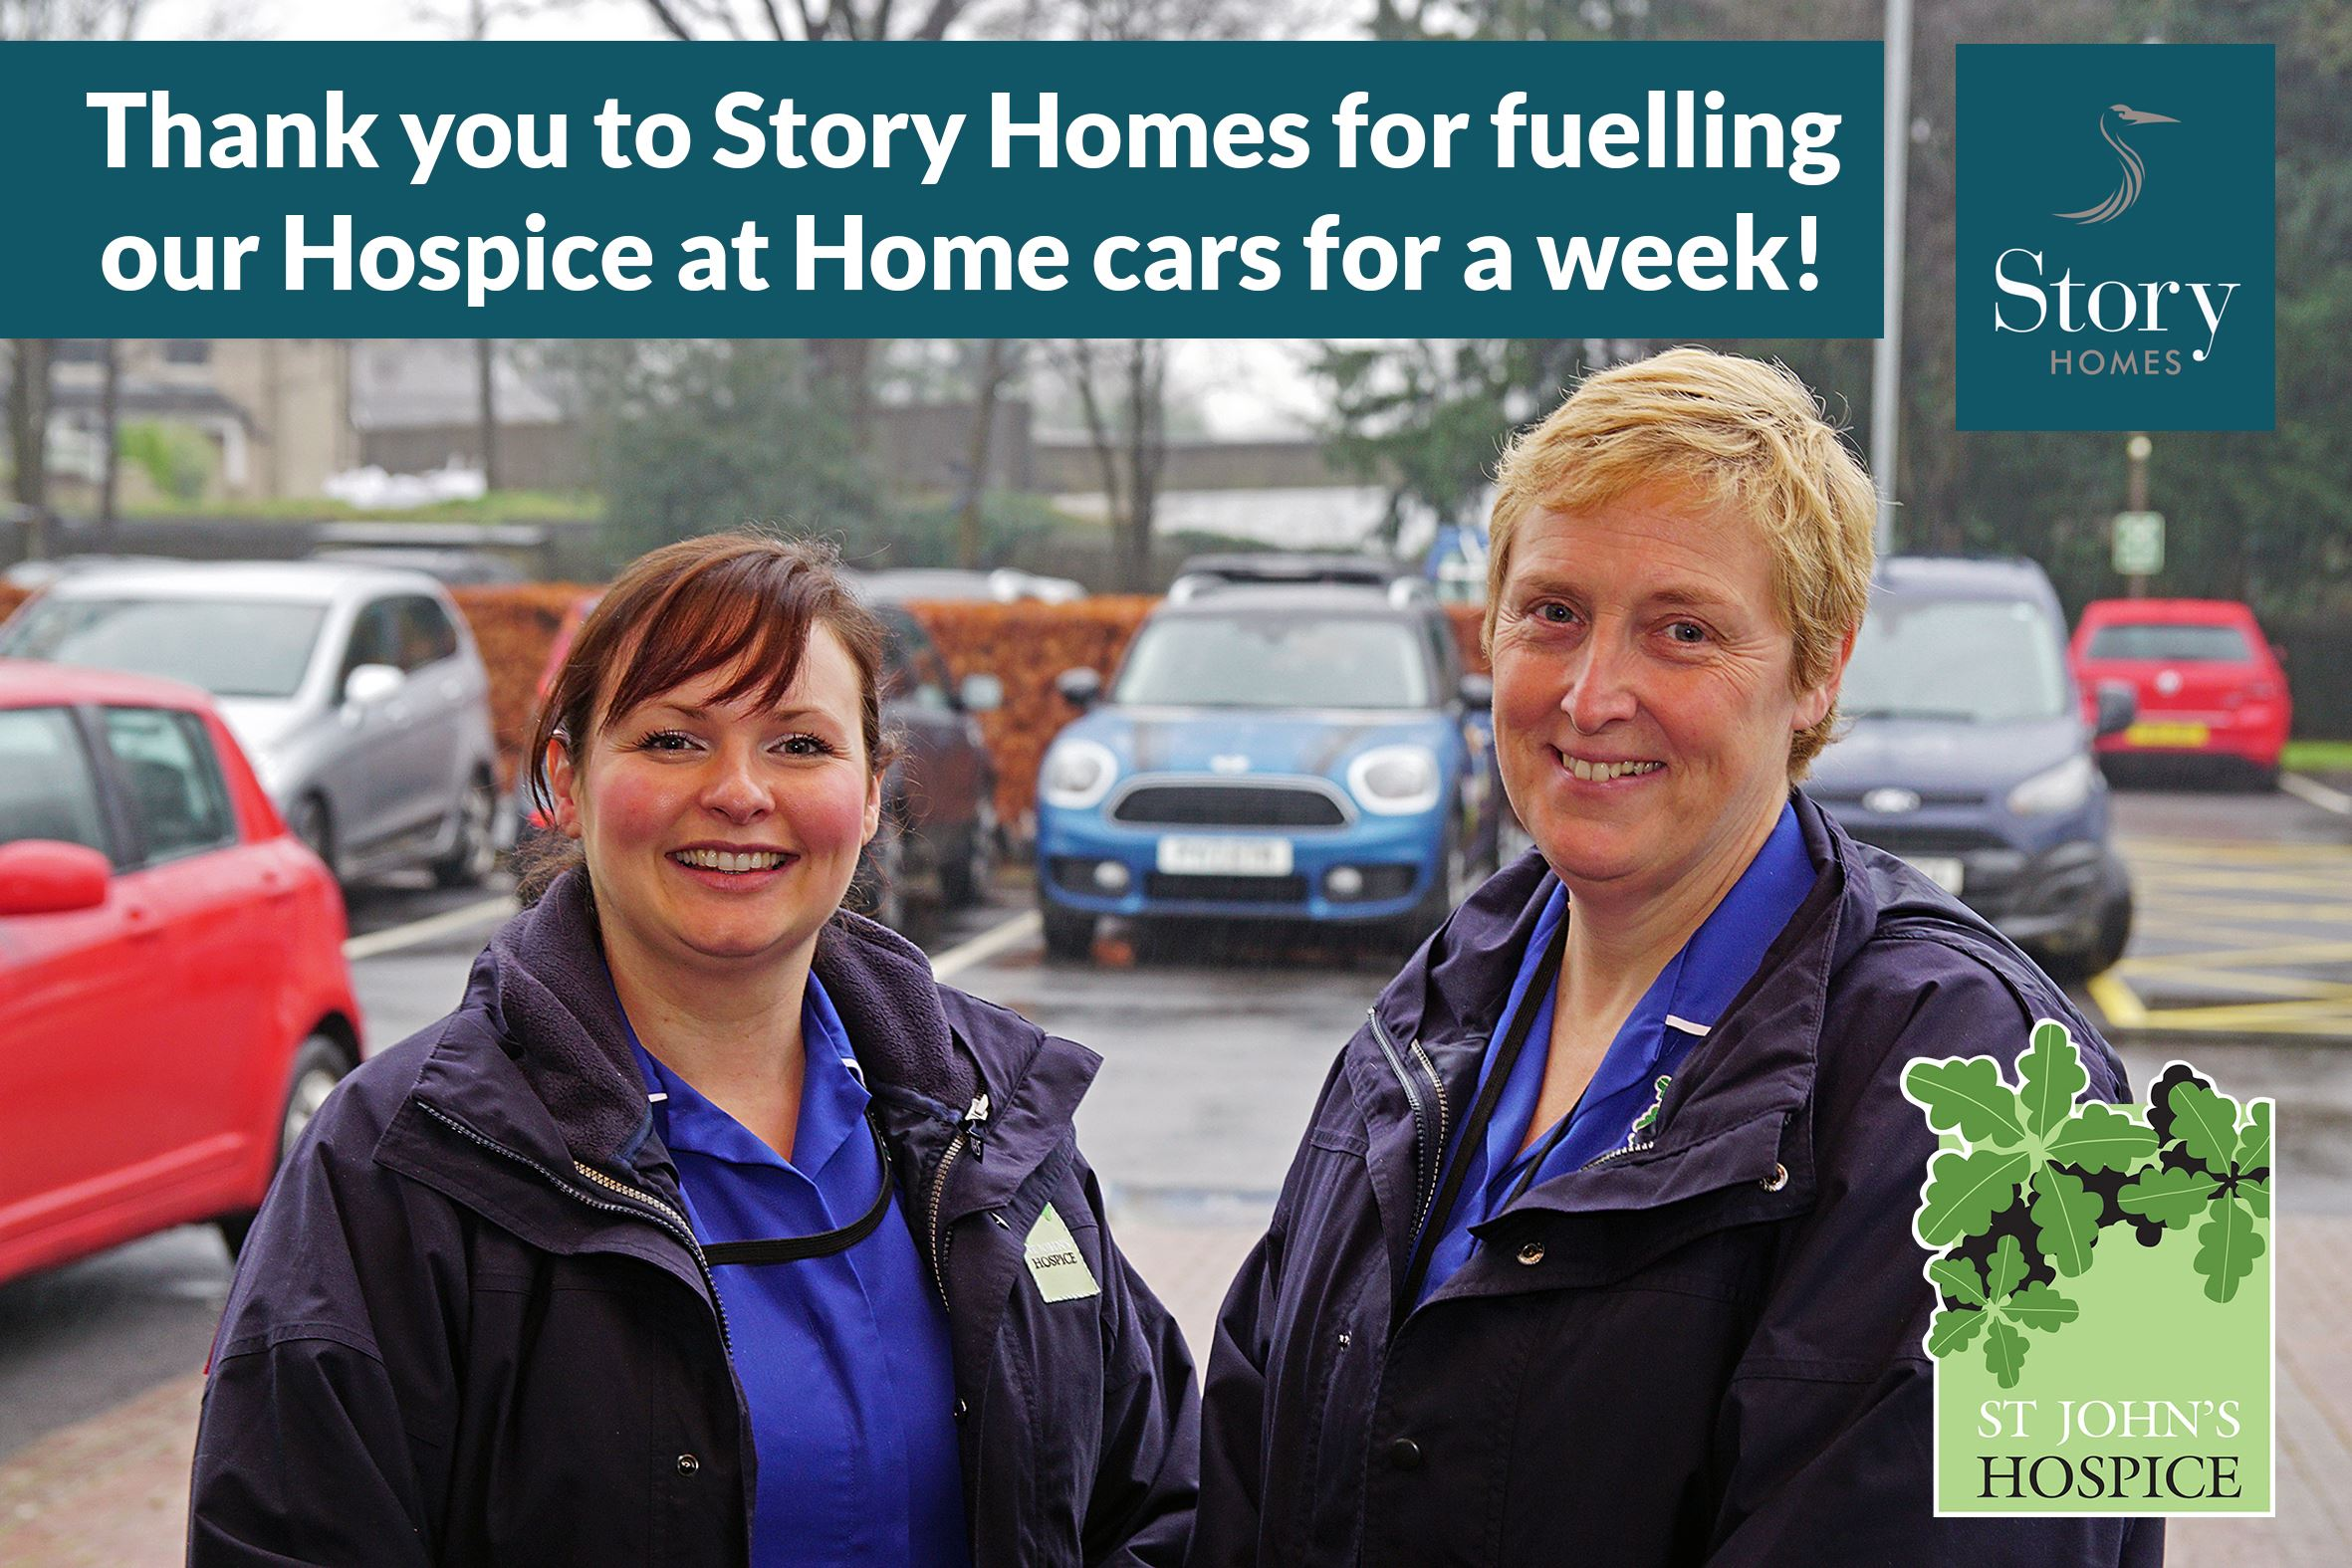 story-homes-hospice-at-home-thank-you